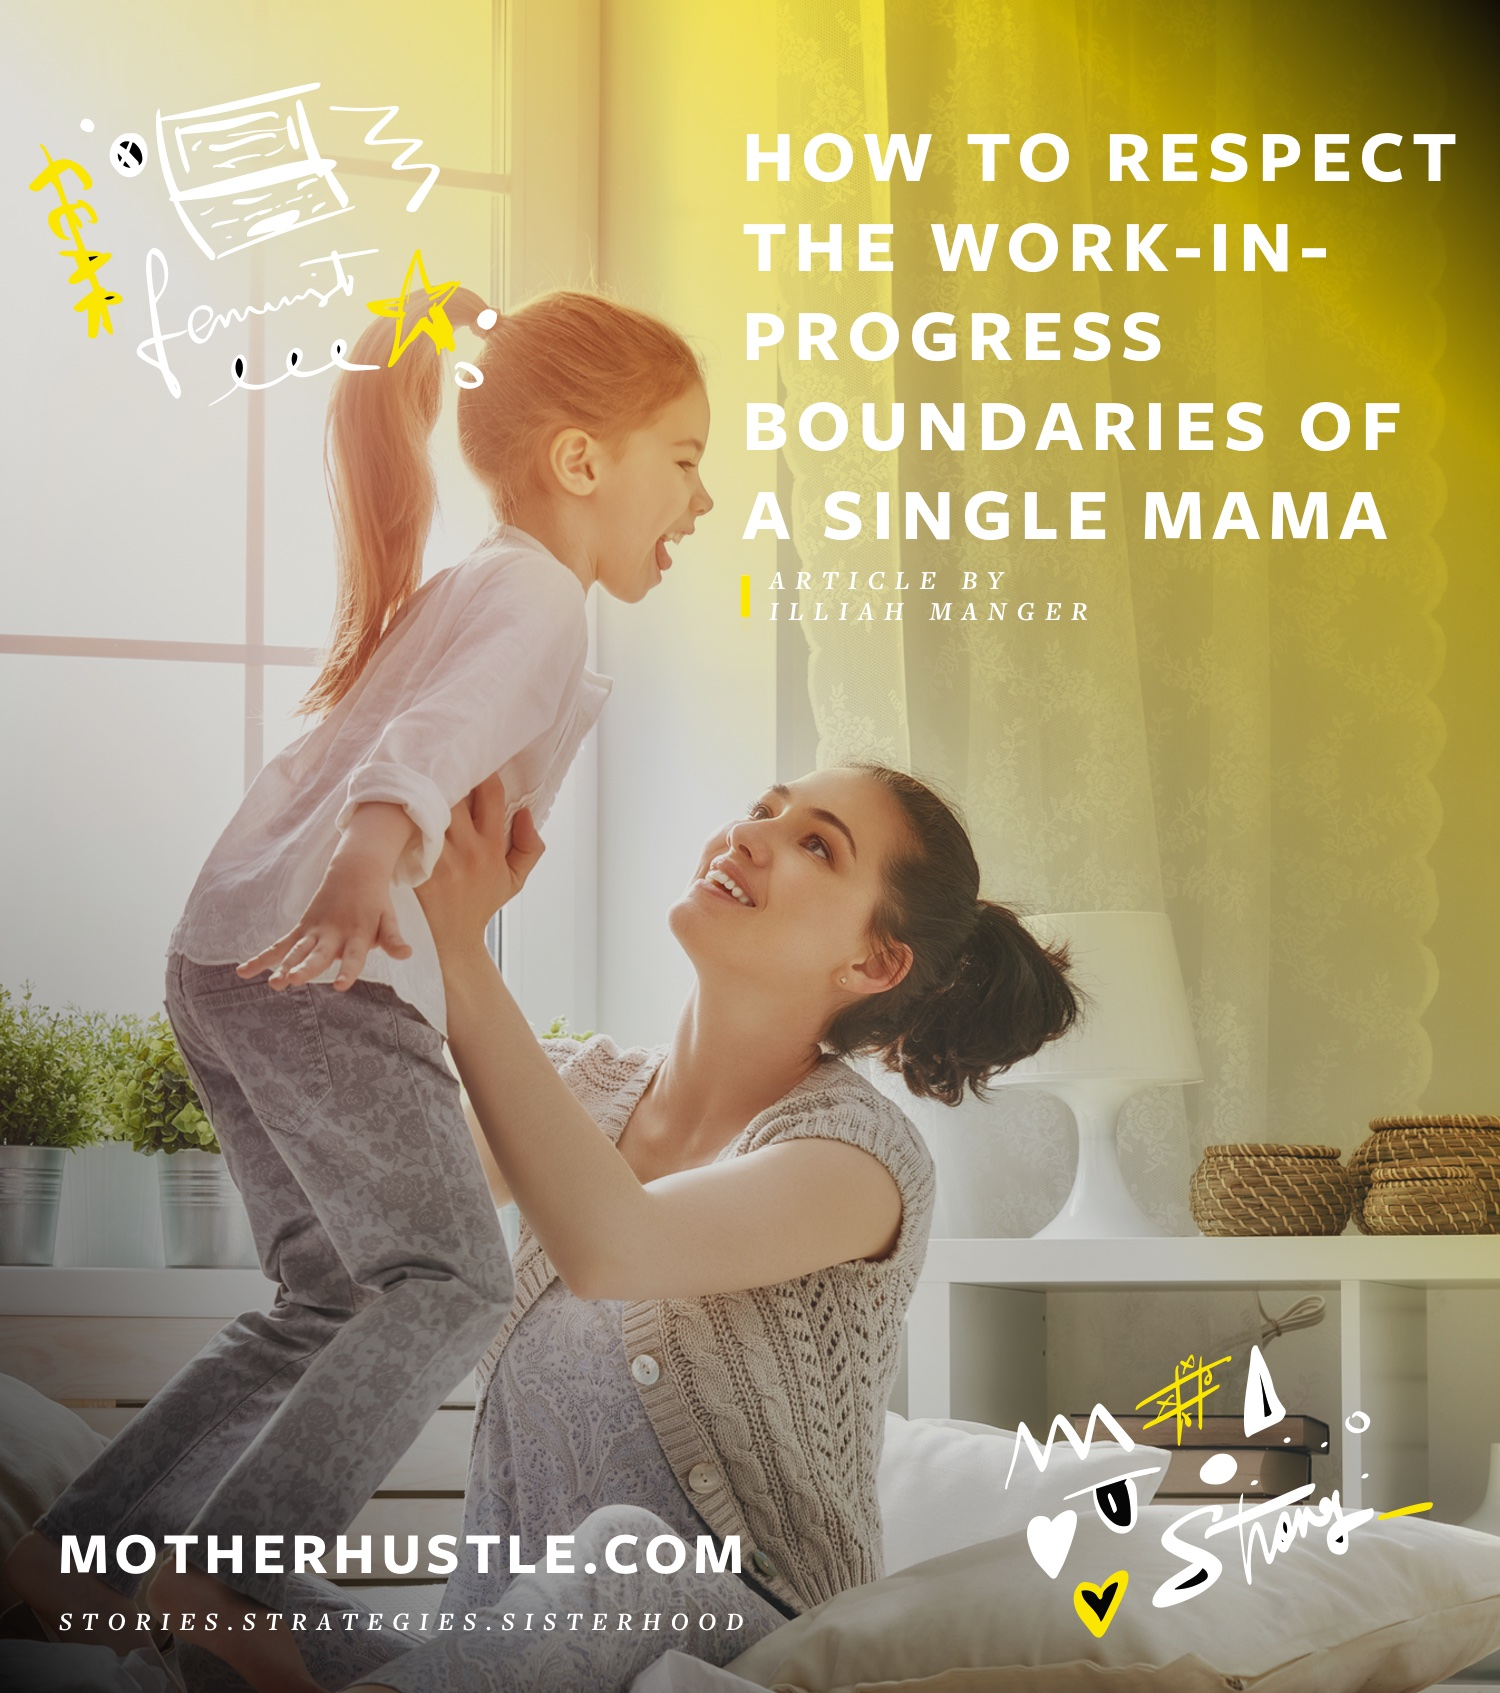 How to Respect The Work-in-Progress Boundaries of a Single Mama - BY Illiah Manger for MotherHustle